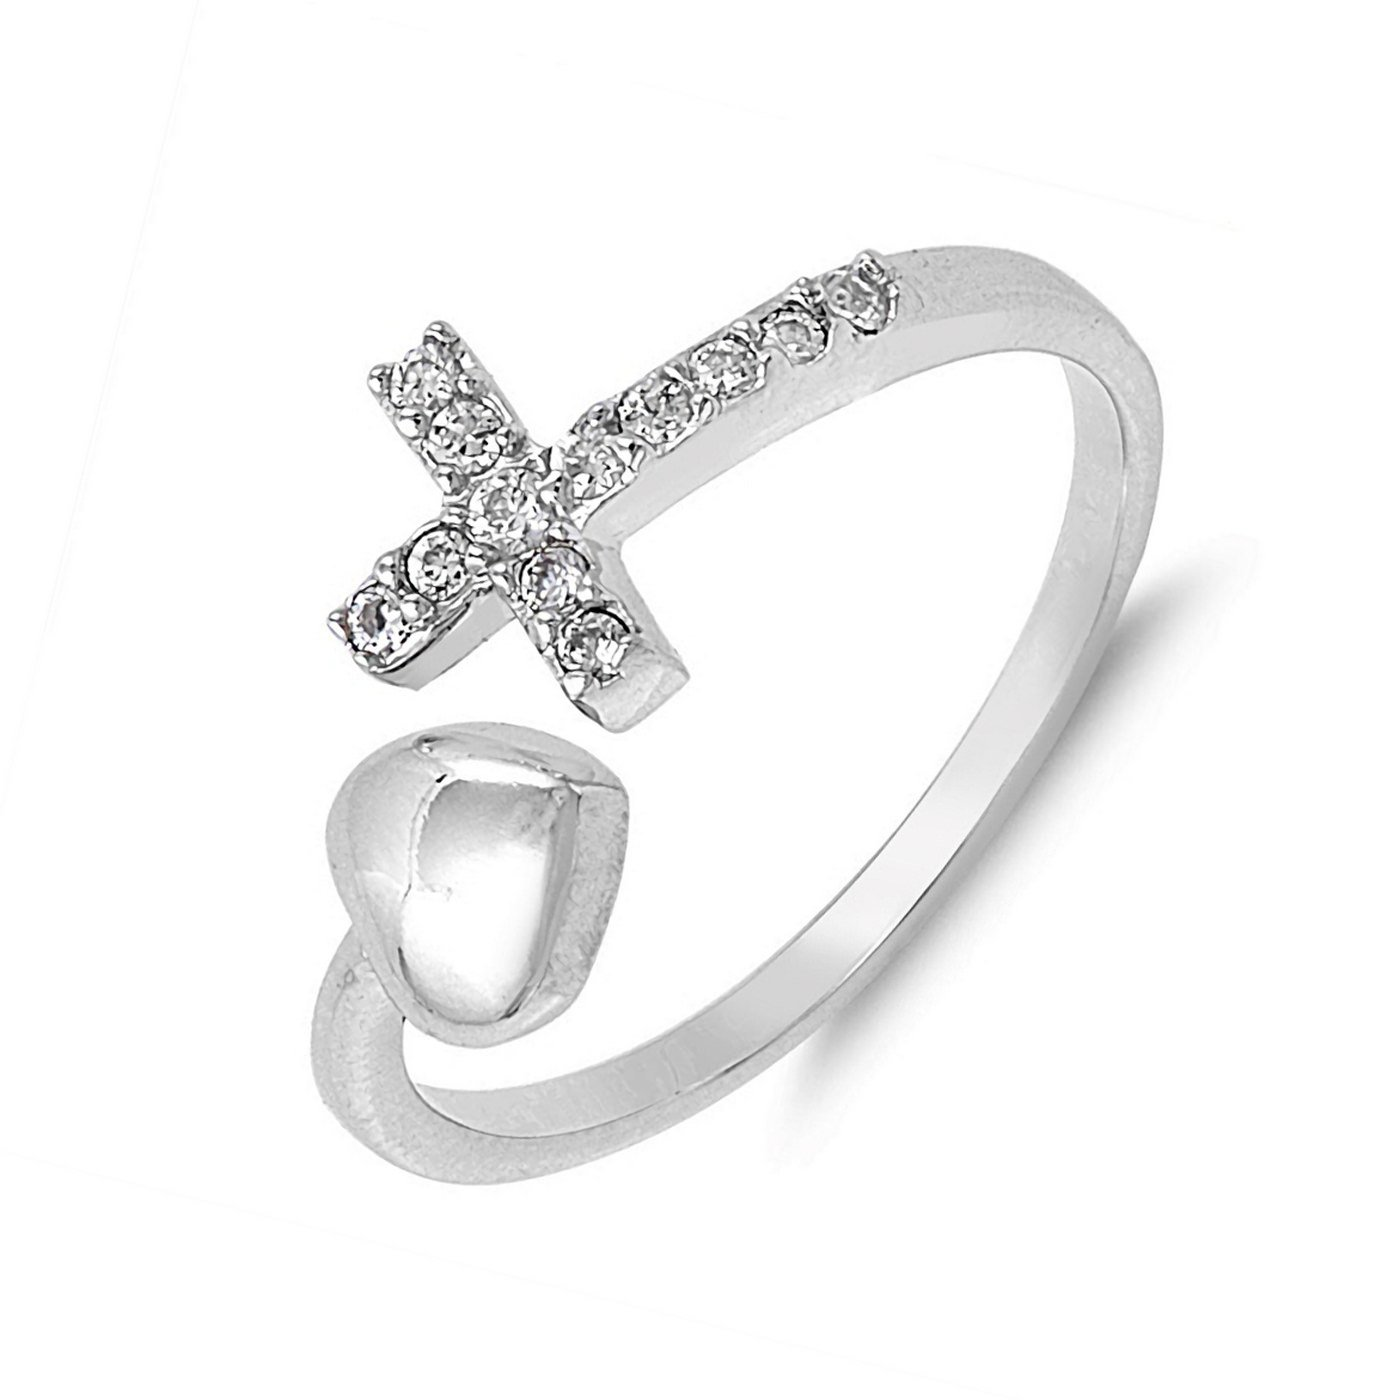 Heart Cross Wraparound Cubic Zirconia Womens 925 Sterling Silver Promise Ring Size 9